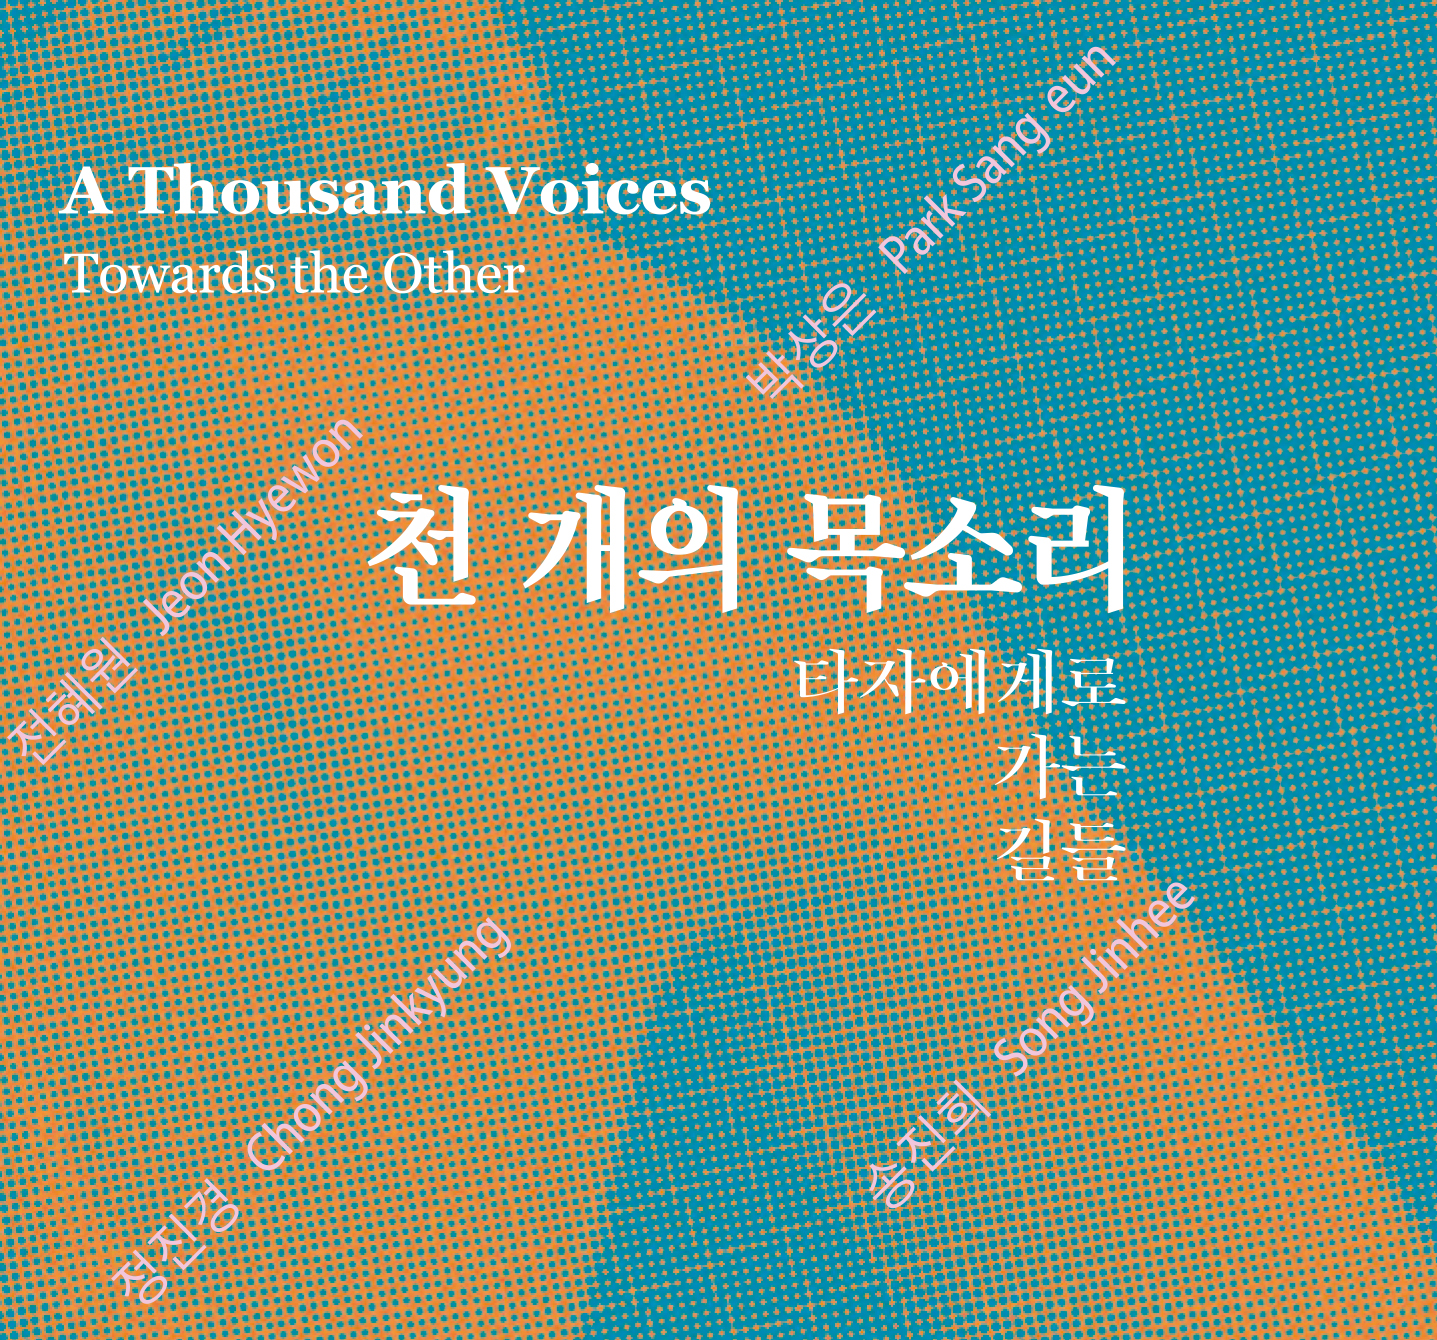 A Thousand Voices: Towards the Other